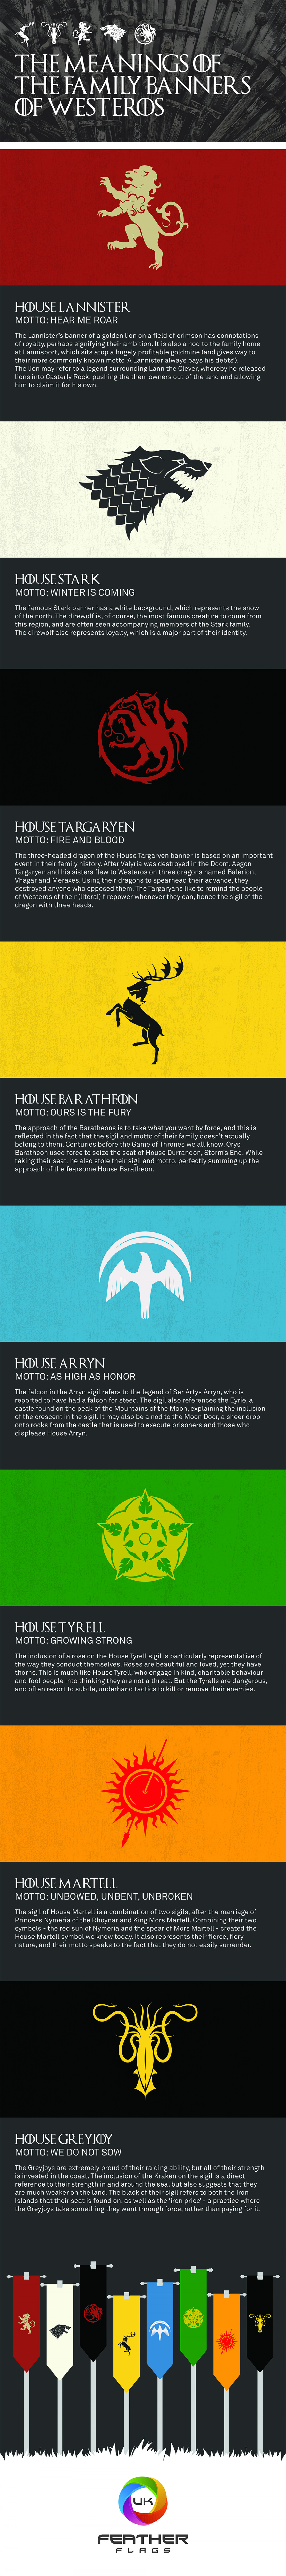 The Meanings of the Family Banners of Westeros Infographic